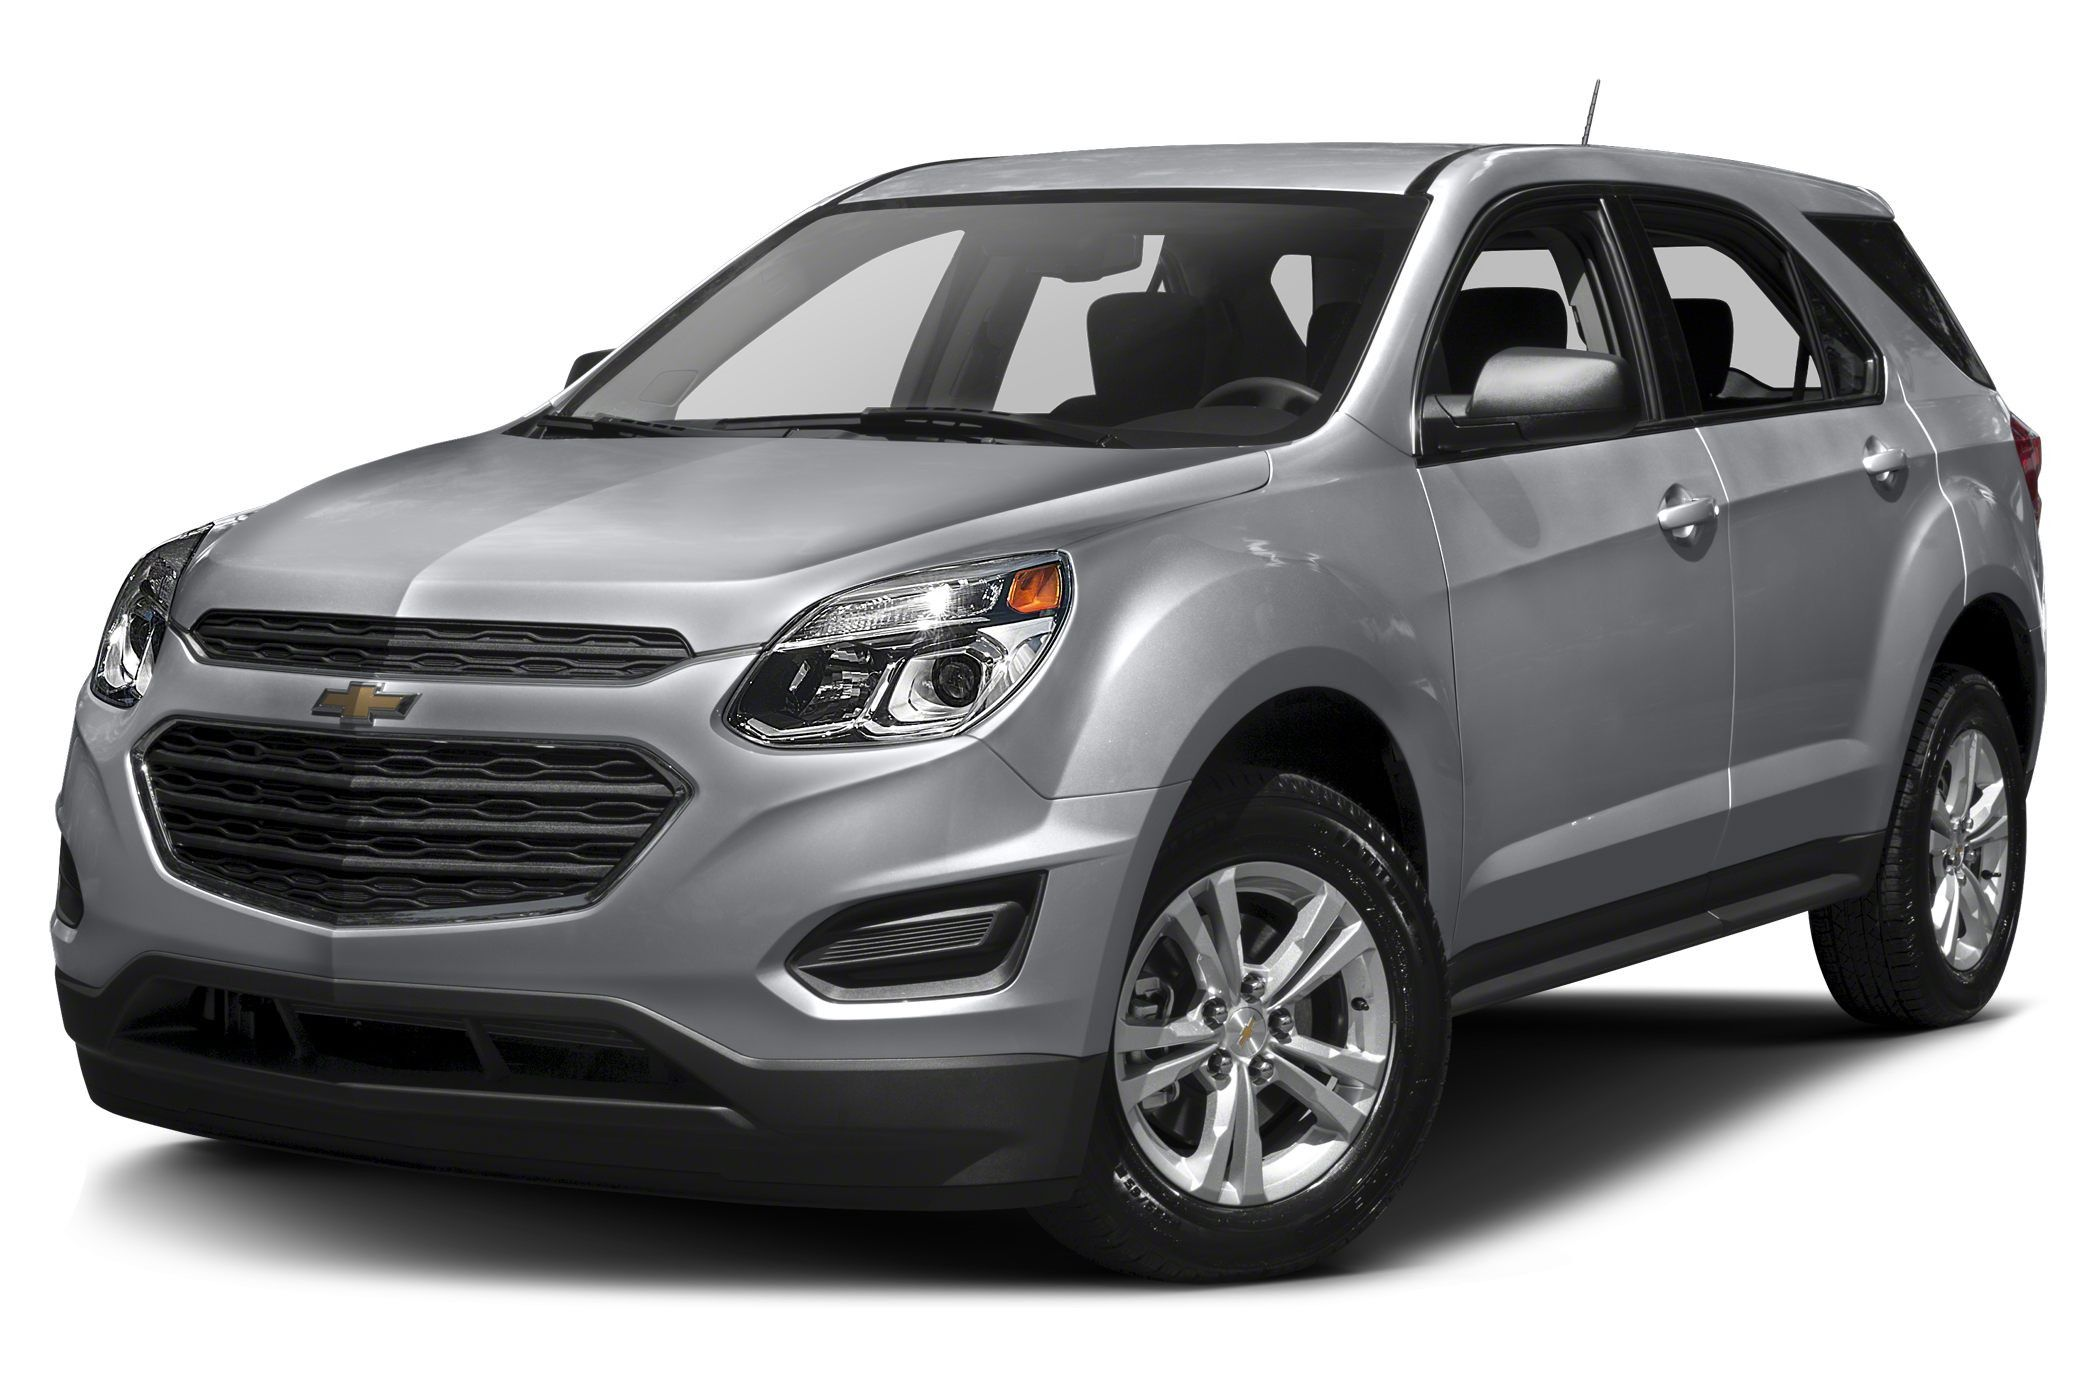 2018 Chevy Equinox Ltz Check More At Http Www Autocarblog Club